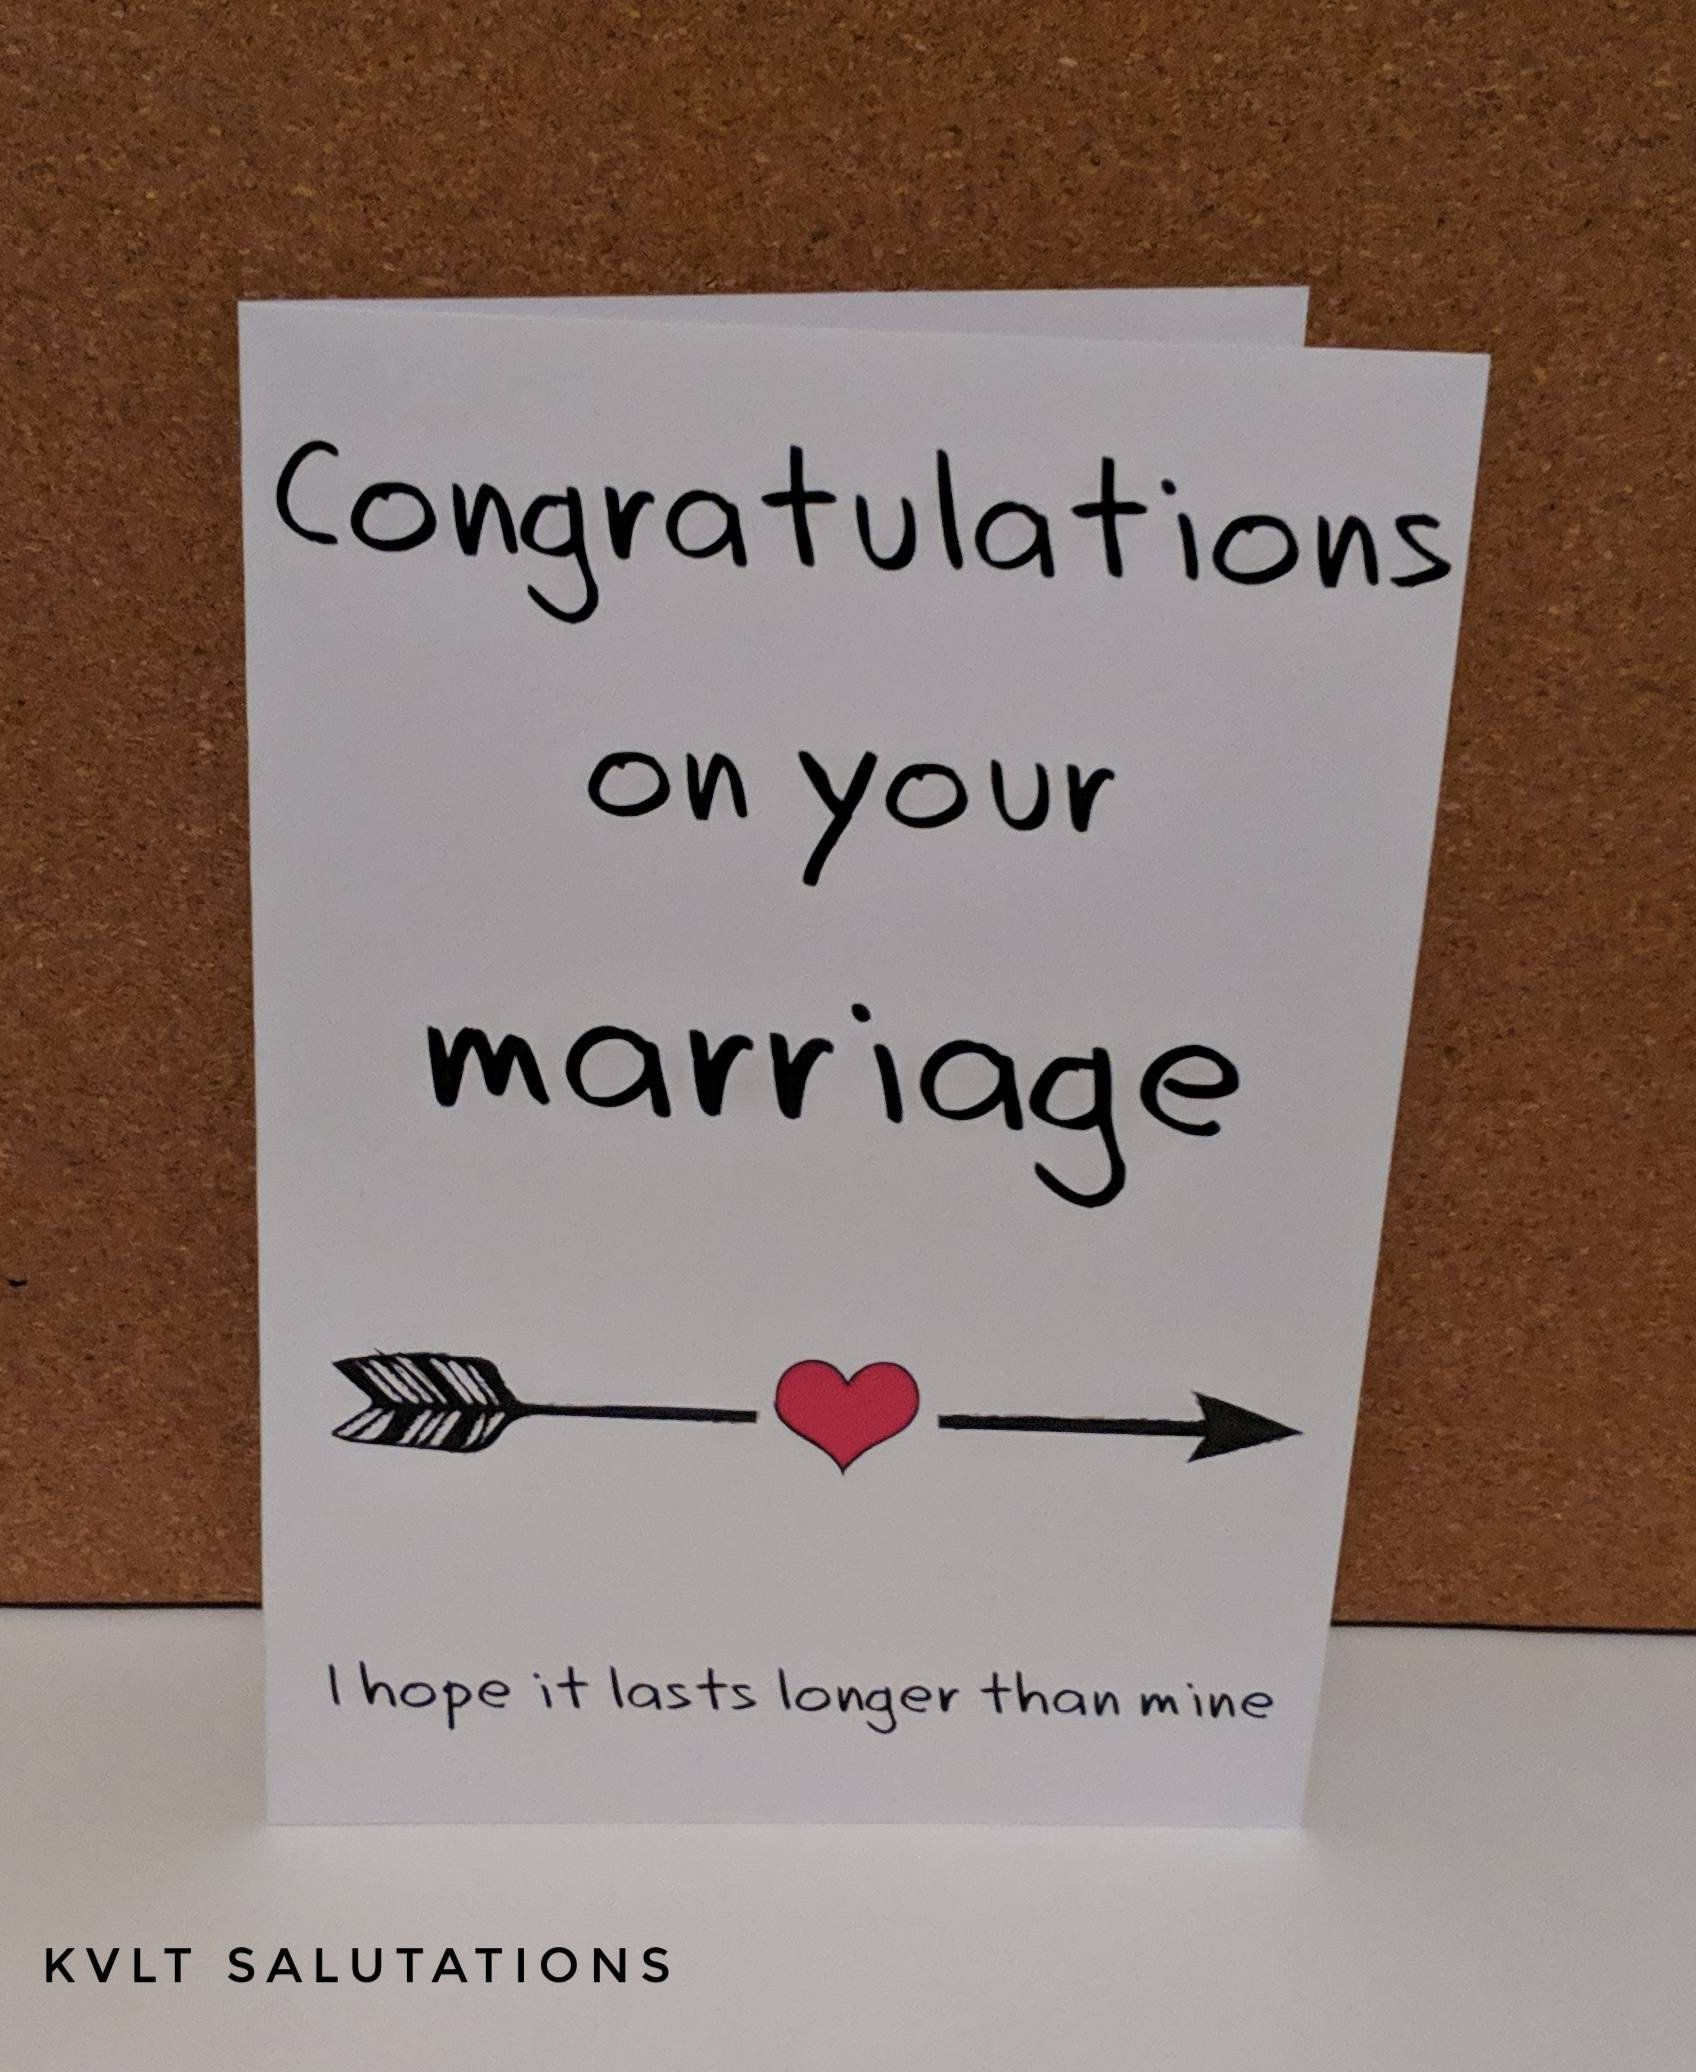 Congratulations On Your Marriage I Hope It Lasts Longer Than Mine Funny Wedding Card Marriage Card Bride G Funny Wedding Cards Groom Card Marriage Cards